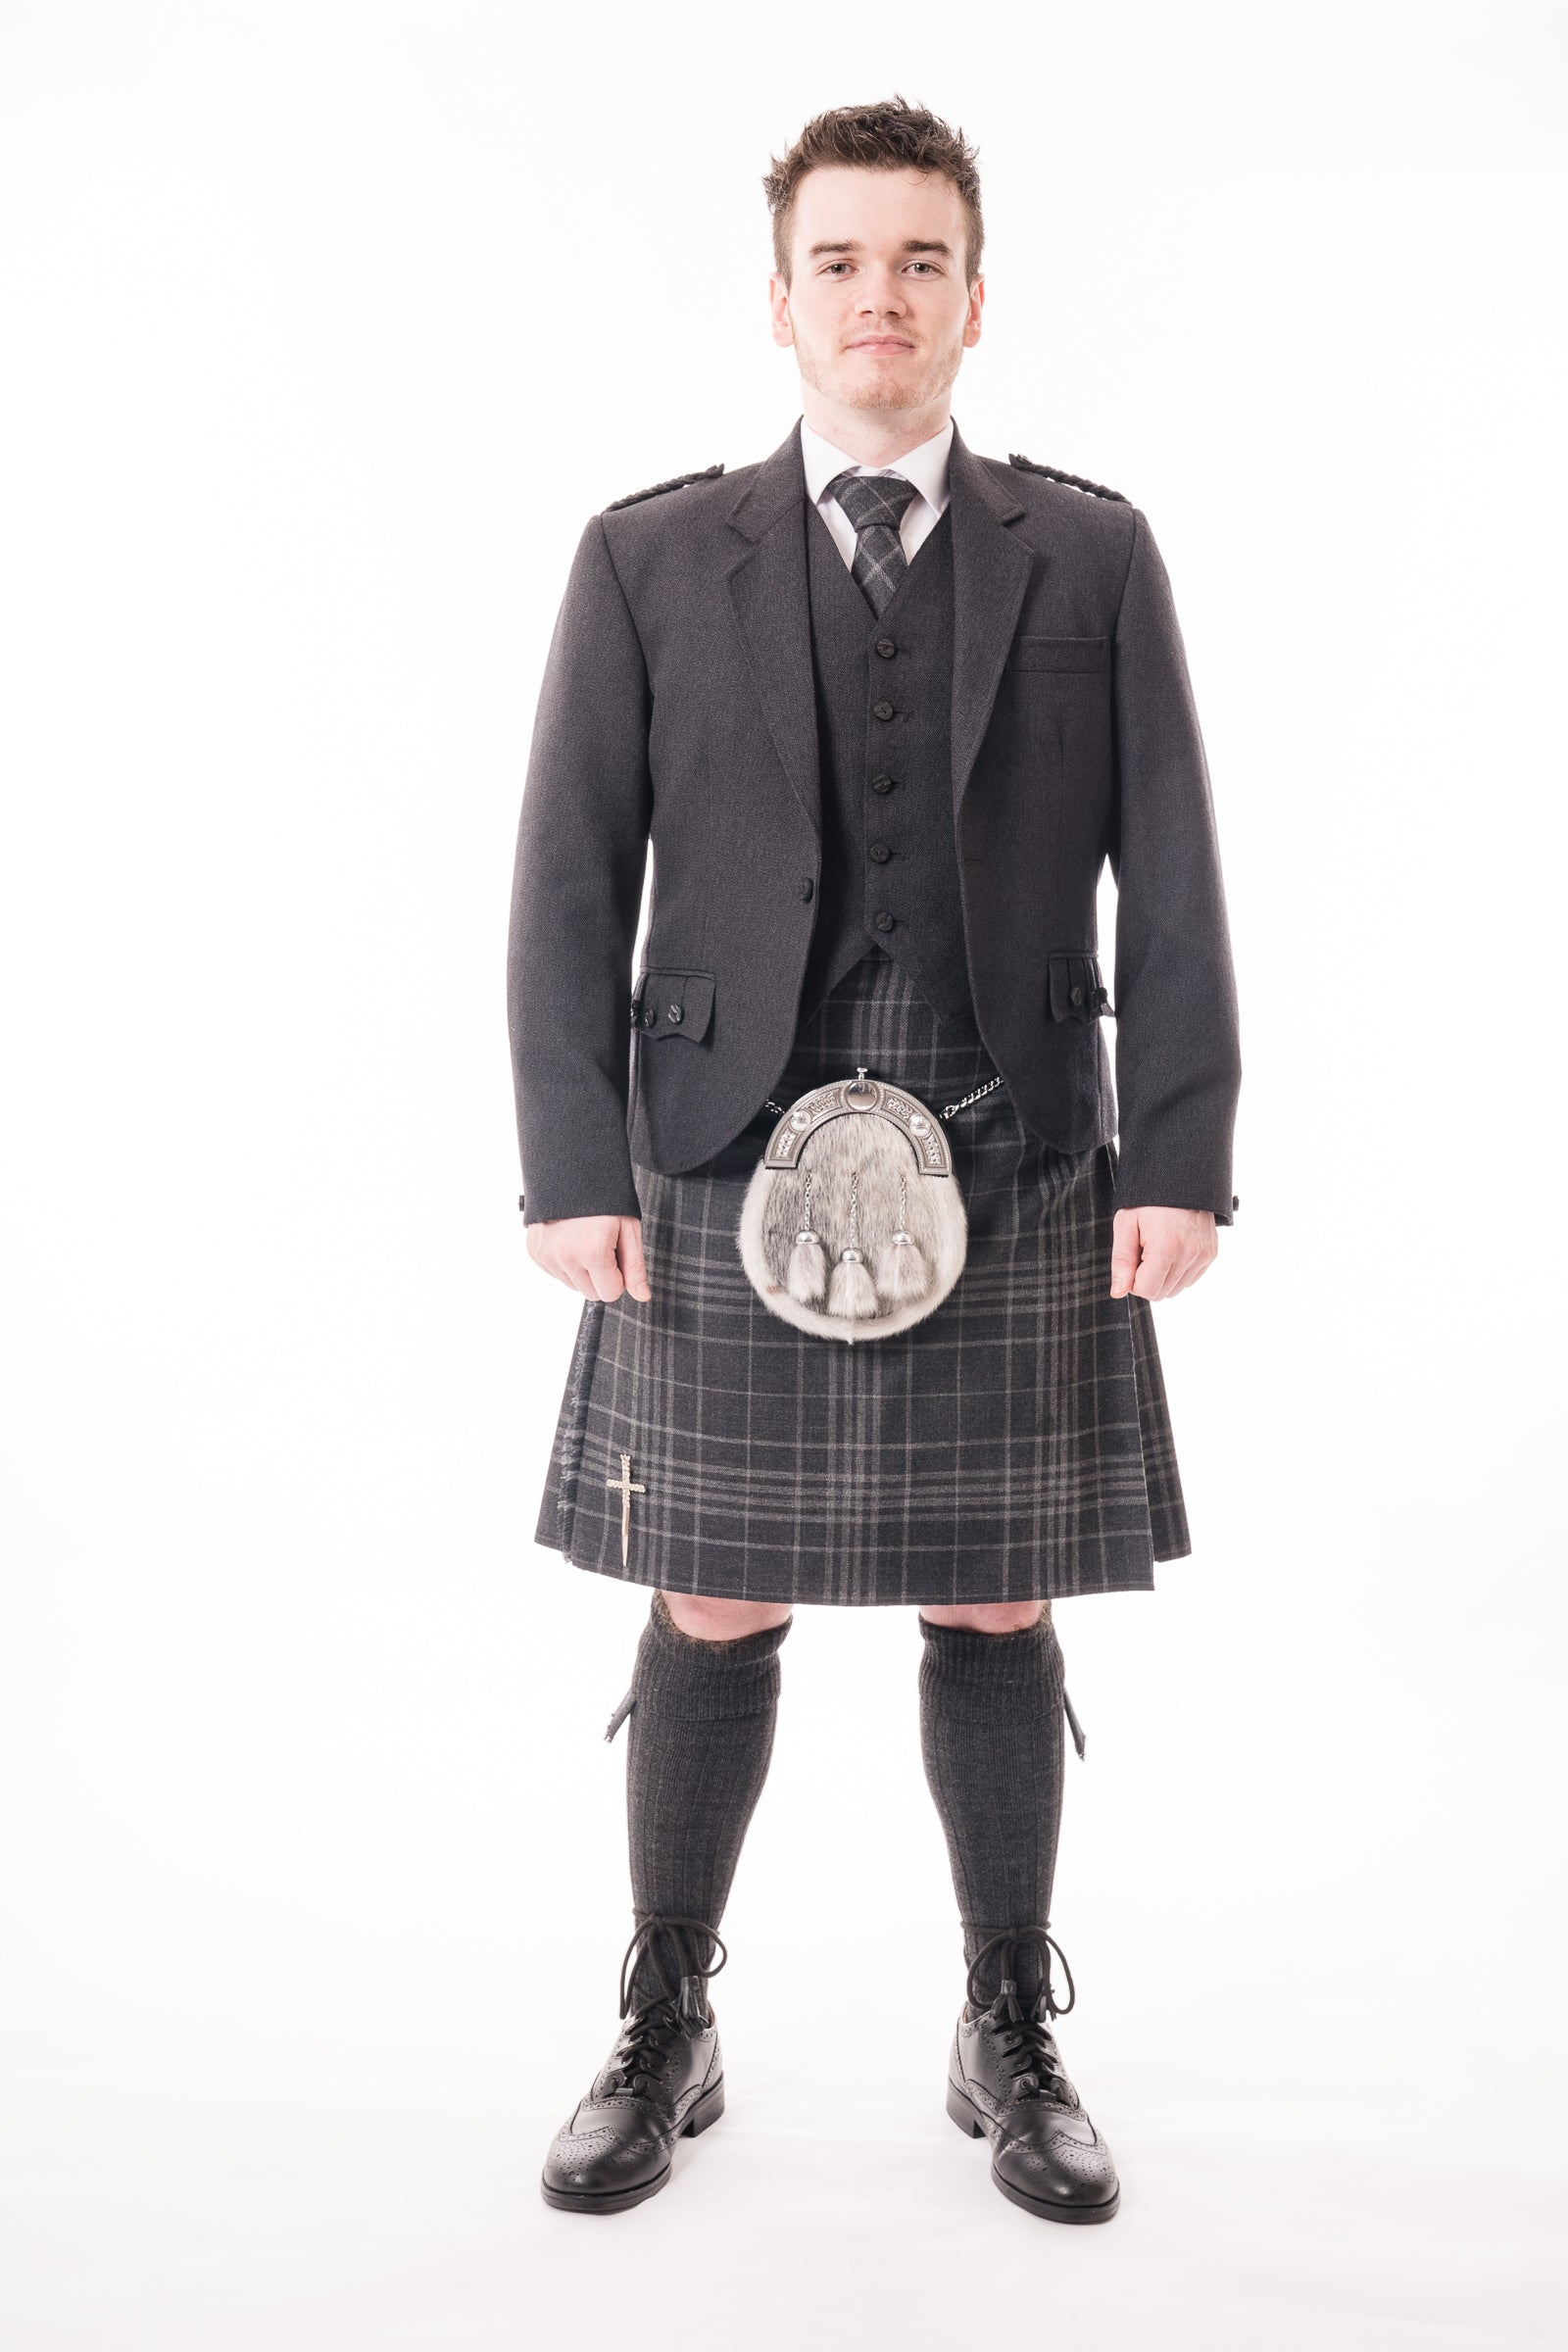 Charcoal crail kilt hire outfit with Hebridean Grey tartan kilt from Anderson Kilts Dumfries